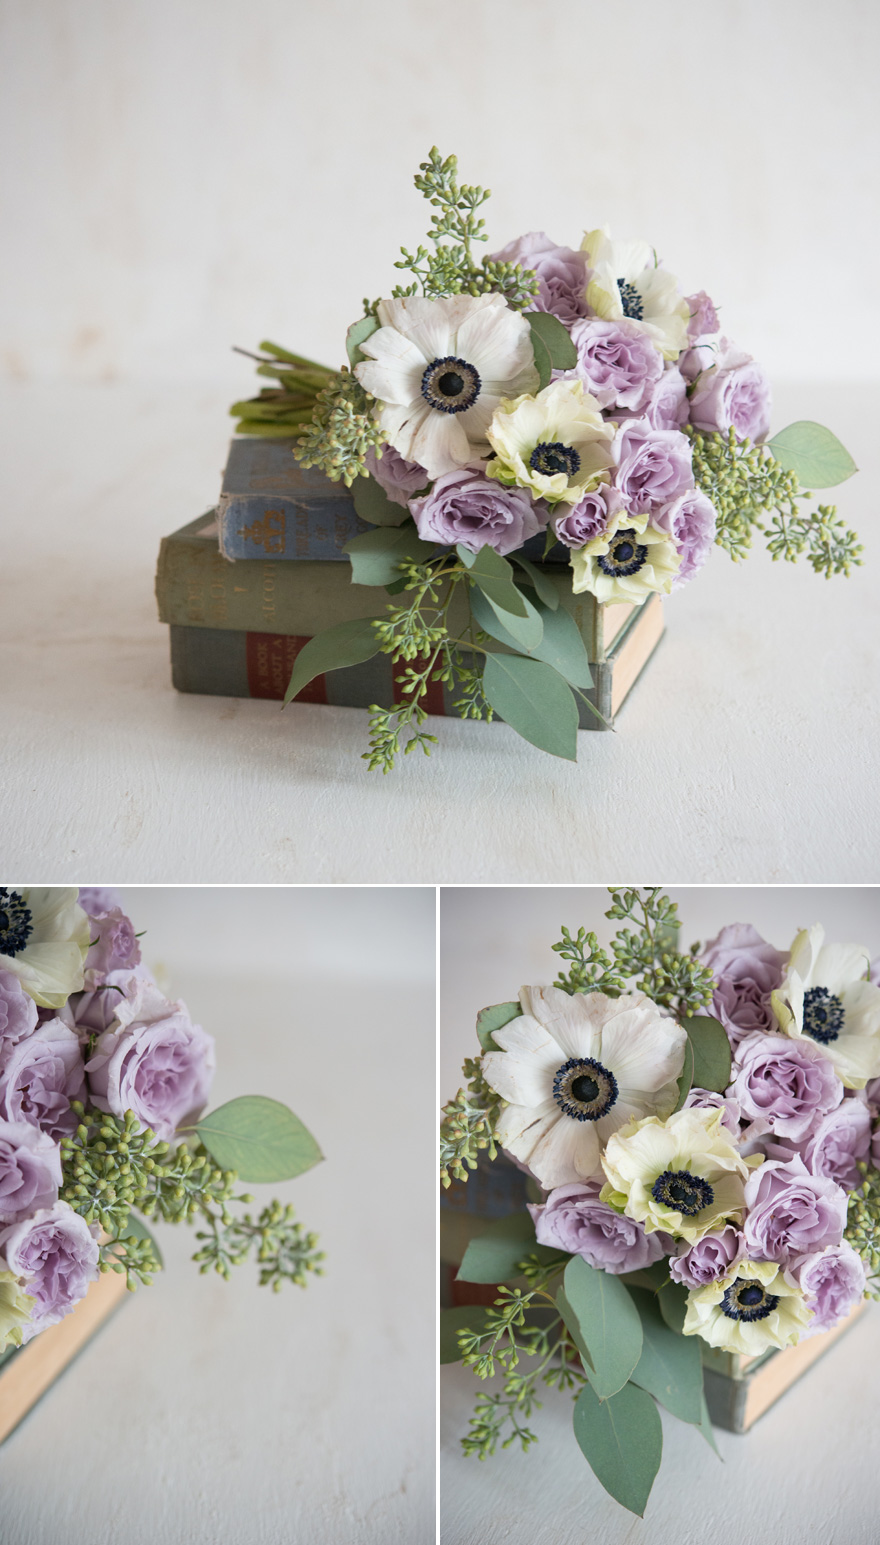 Flowers and Books Centrepiece Idea | Confetti.co.uk